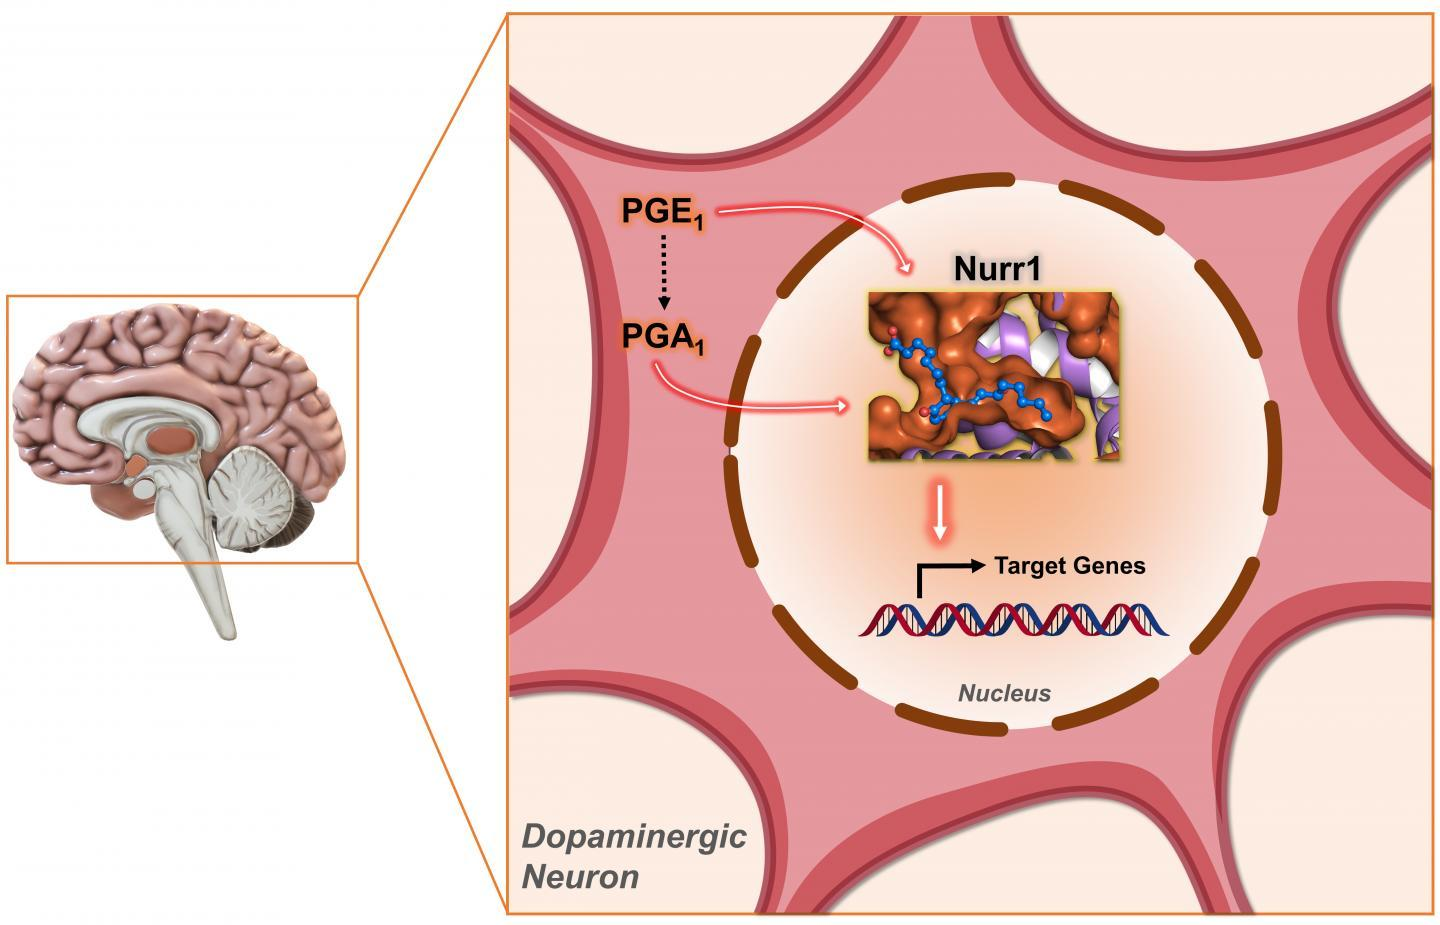 Researchers have found that a pair of molecules, called PGE1 and PGA1, bind to a class of proteins called Nurr1 to drive dopamine production in mice